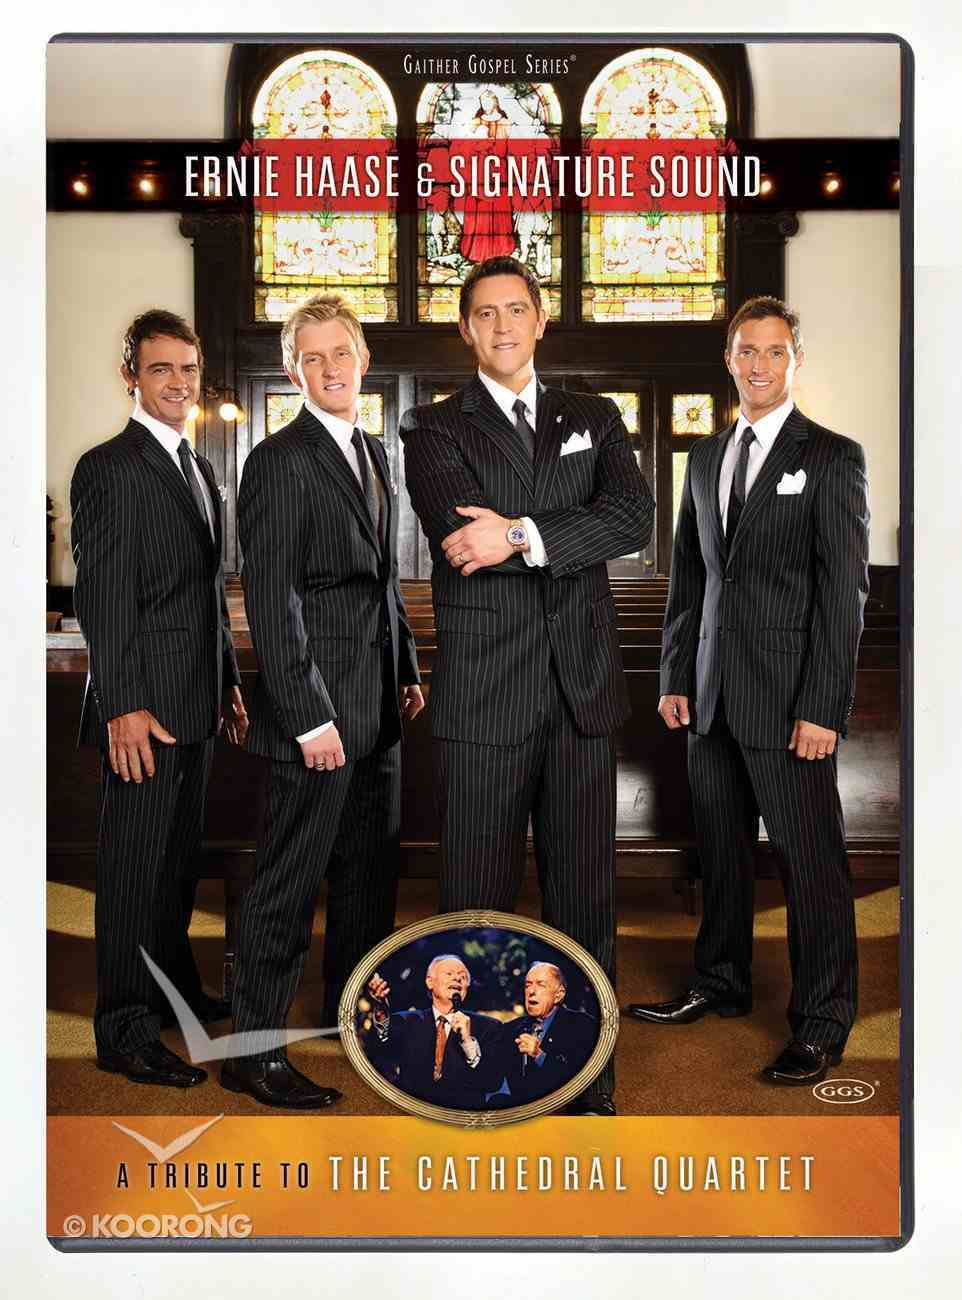 Tribute to the Cathedral Quartet - Ernie Haase & Signature Sound (Gaither Gospel Series) DVD